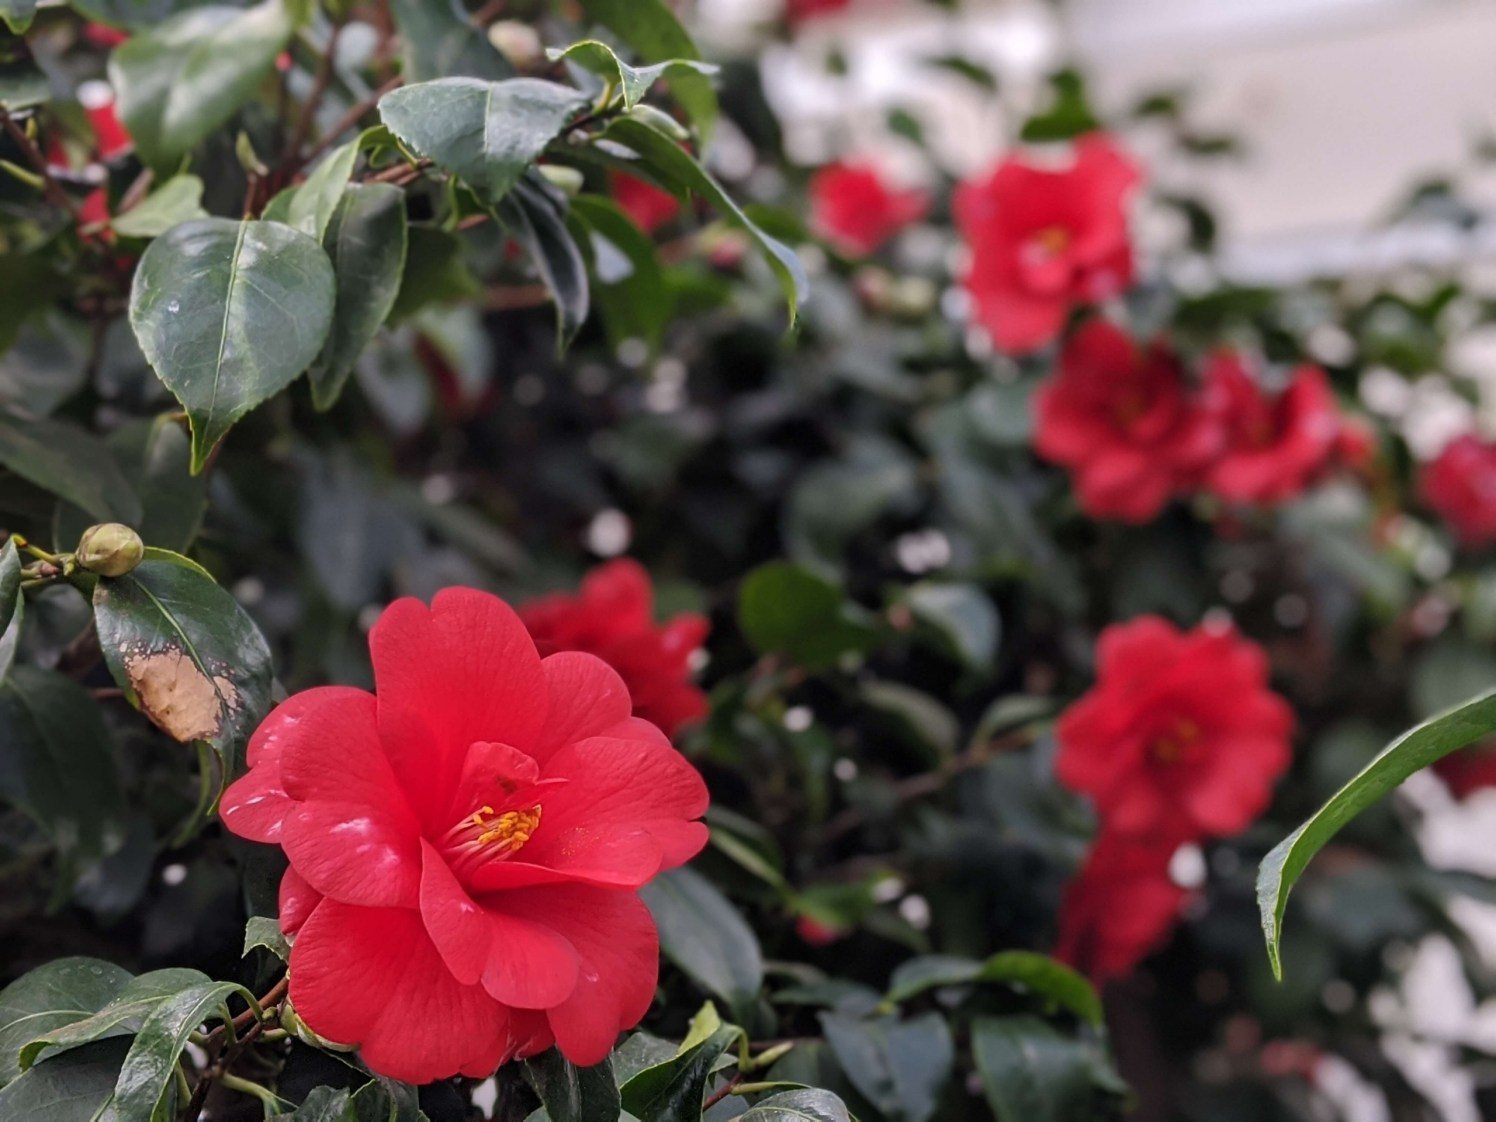 Chiswick House Camellia Show 4 2